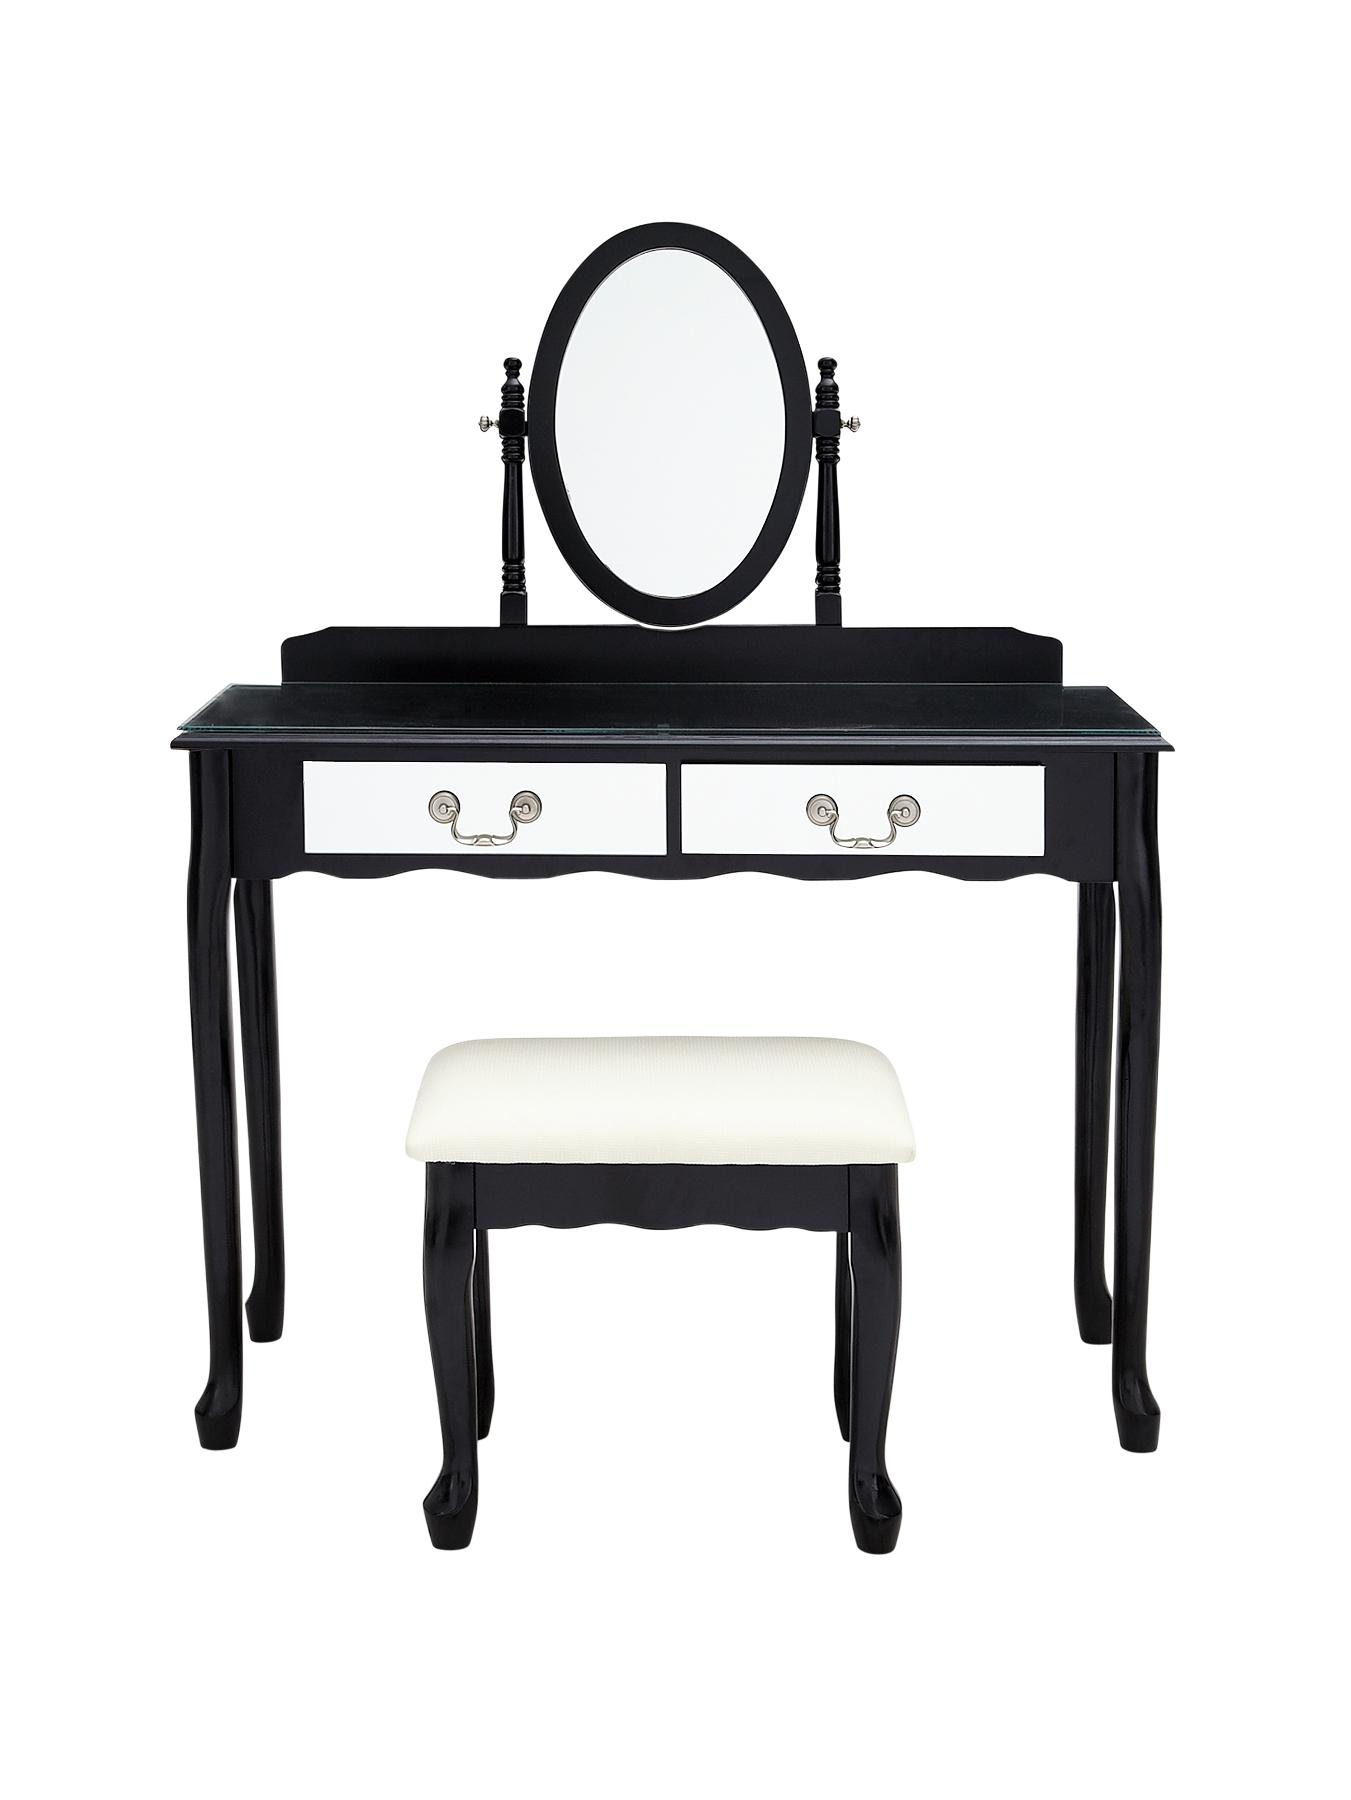 Elysee Mirrored Front Dressing Table and Stool - Black, Black,Ivory